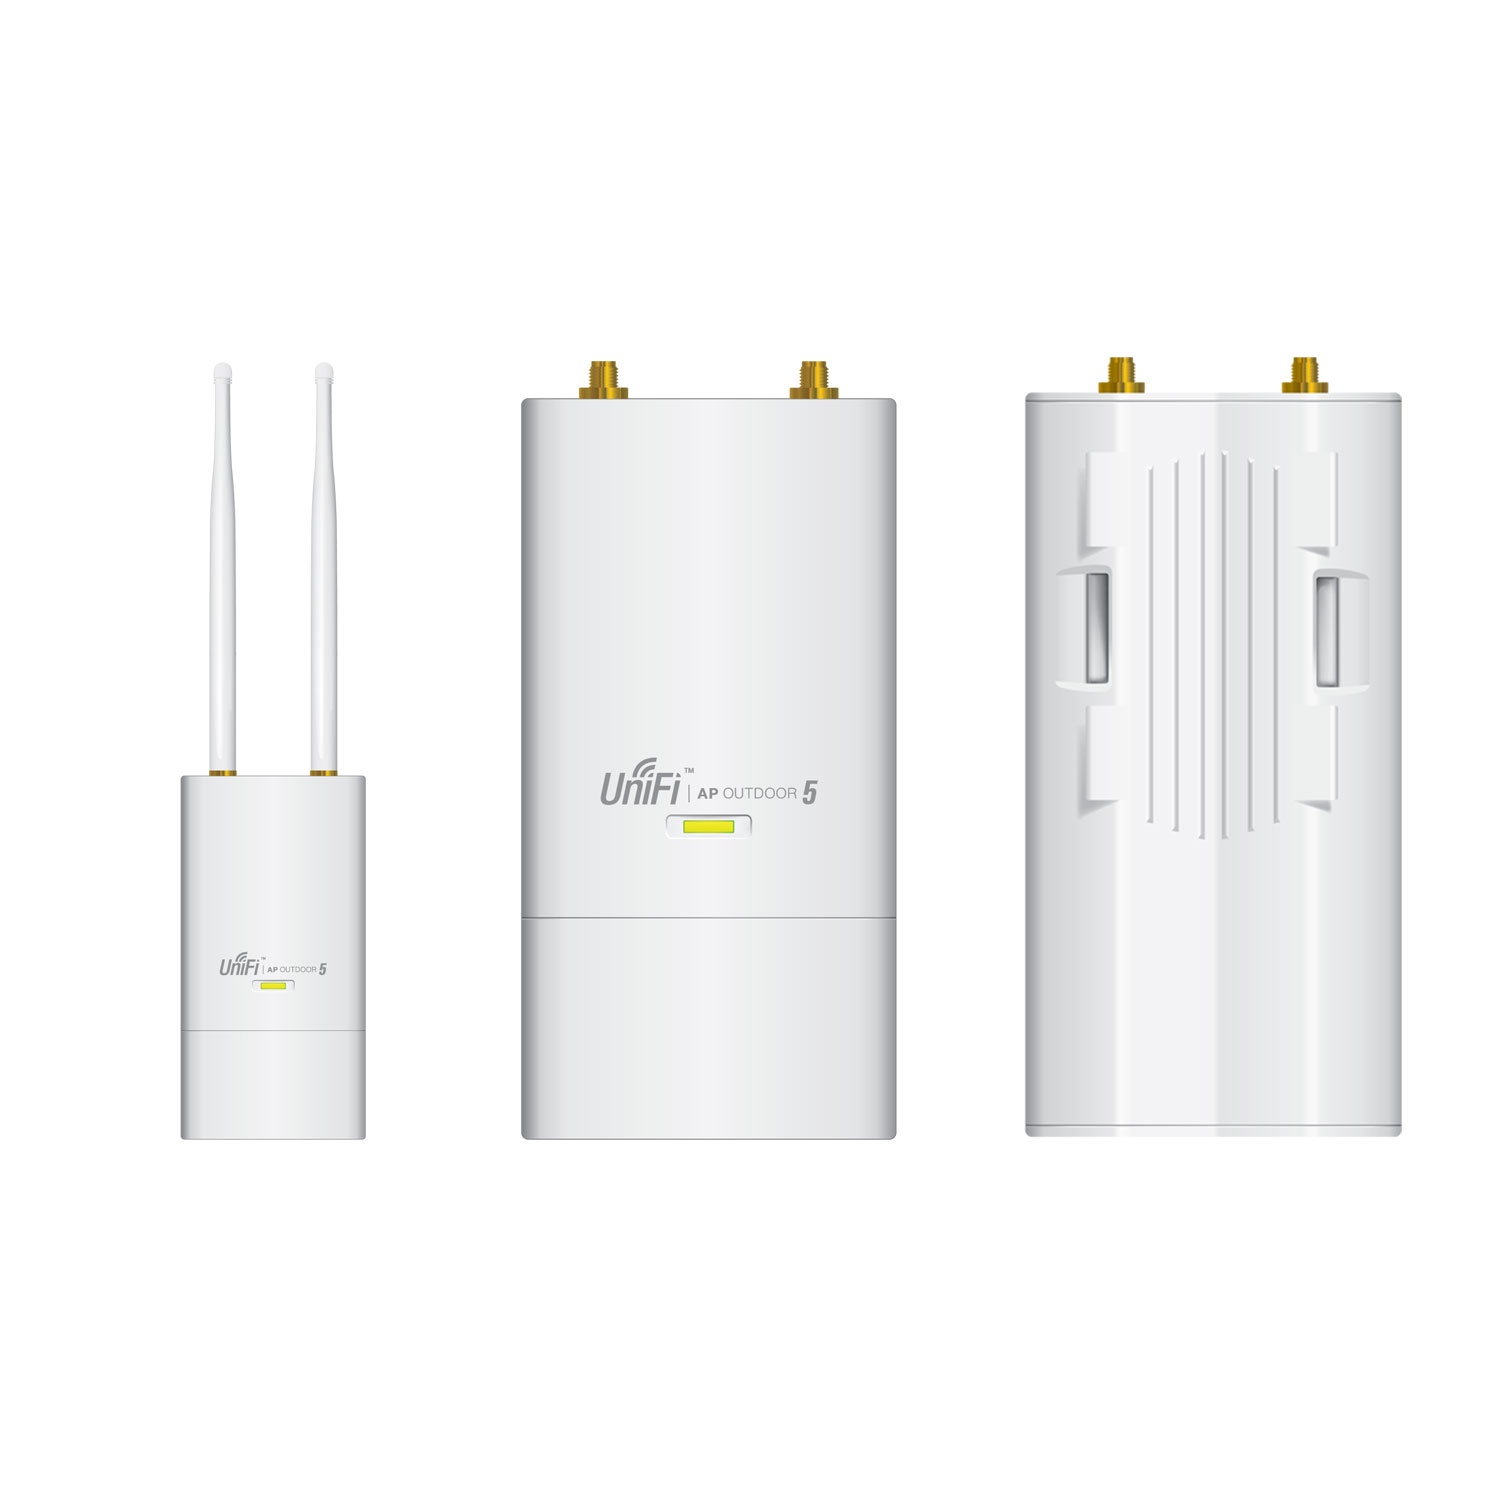 Ubiquiti unifi uap outdoor5 point d 39 acc s wifi ubiquiti for Point d acces wifi exterieur